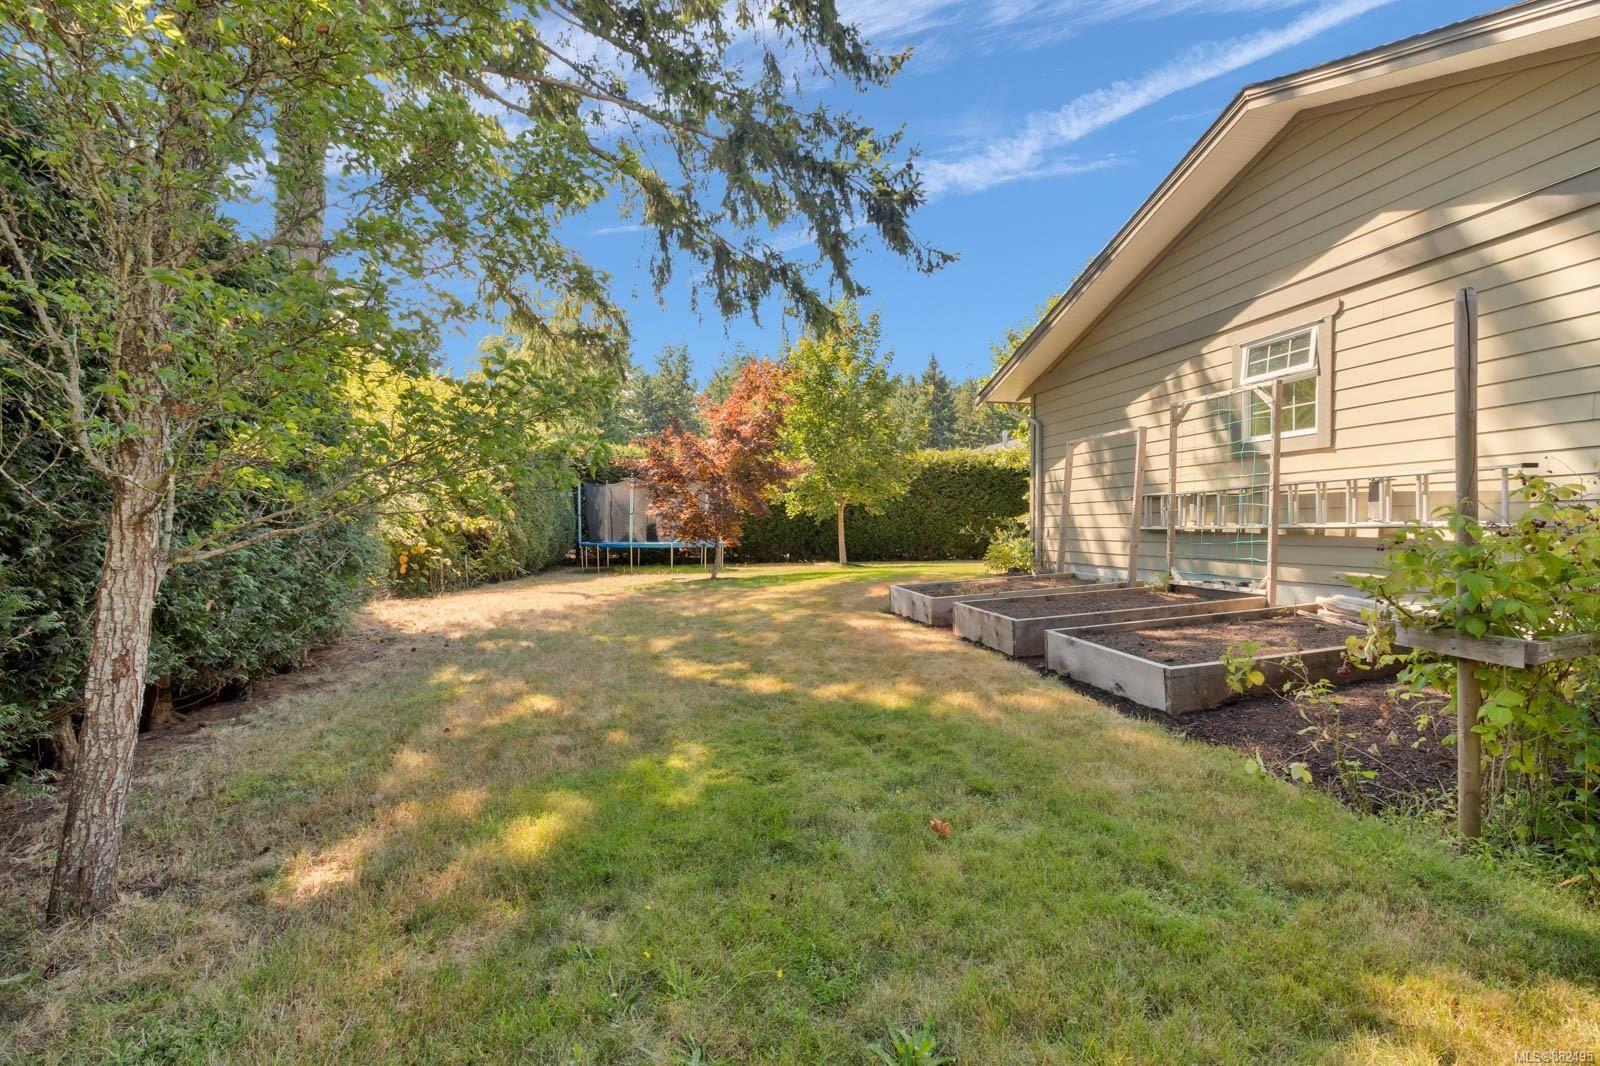 Photo 34: Photos: 375 Butchers Rd in : CV Comox (Town of) House for sale (Comox Valley)  : MLS®# 882495